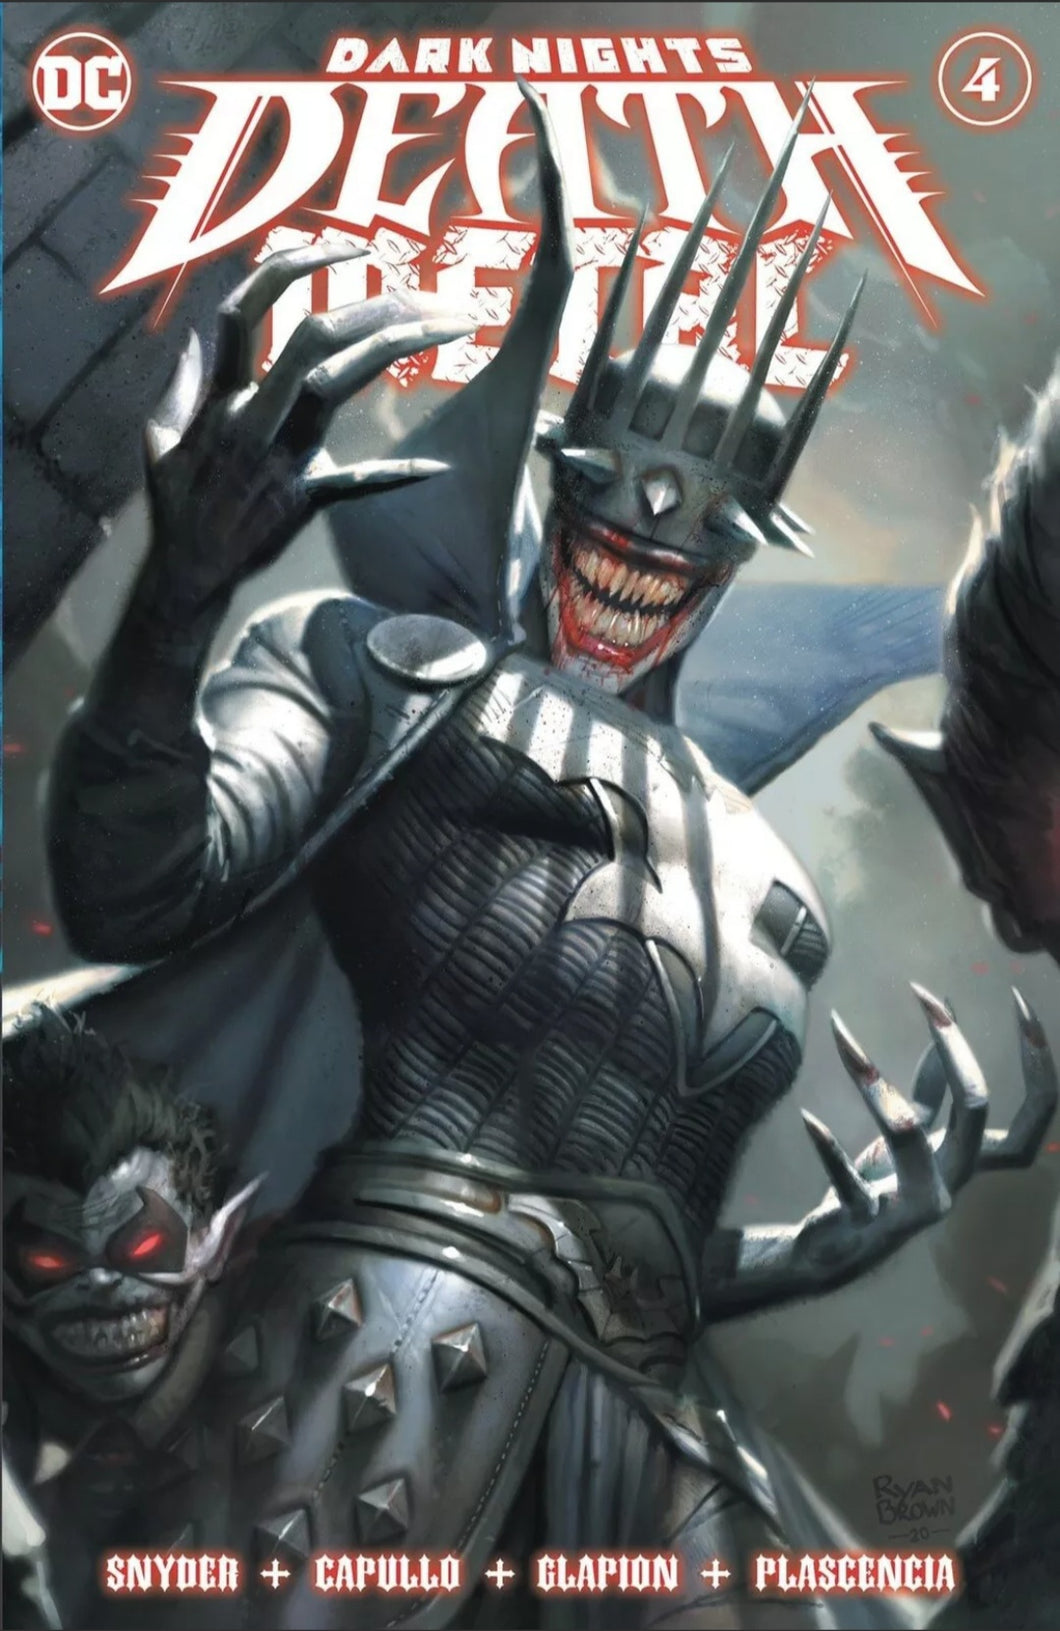 DARK NIGHTS: DEATH METAL #4 (RYAN BROWN EXCLUSIVE TRADE VARIANT)